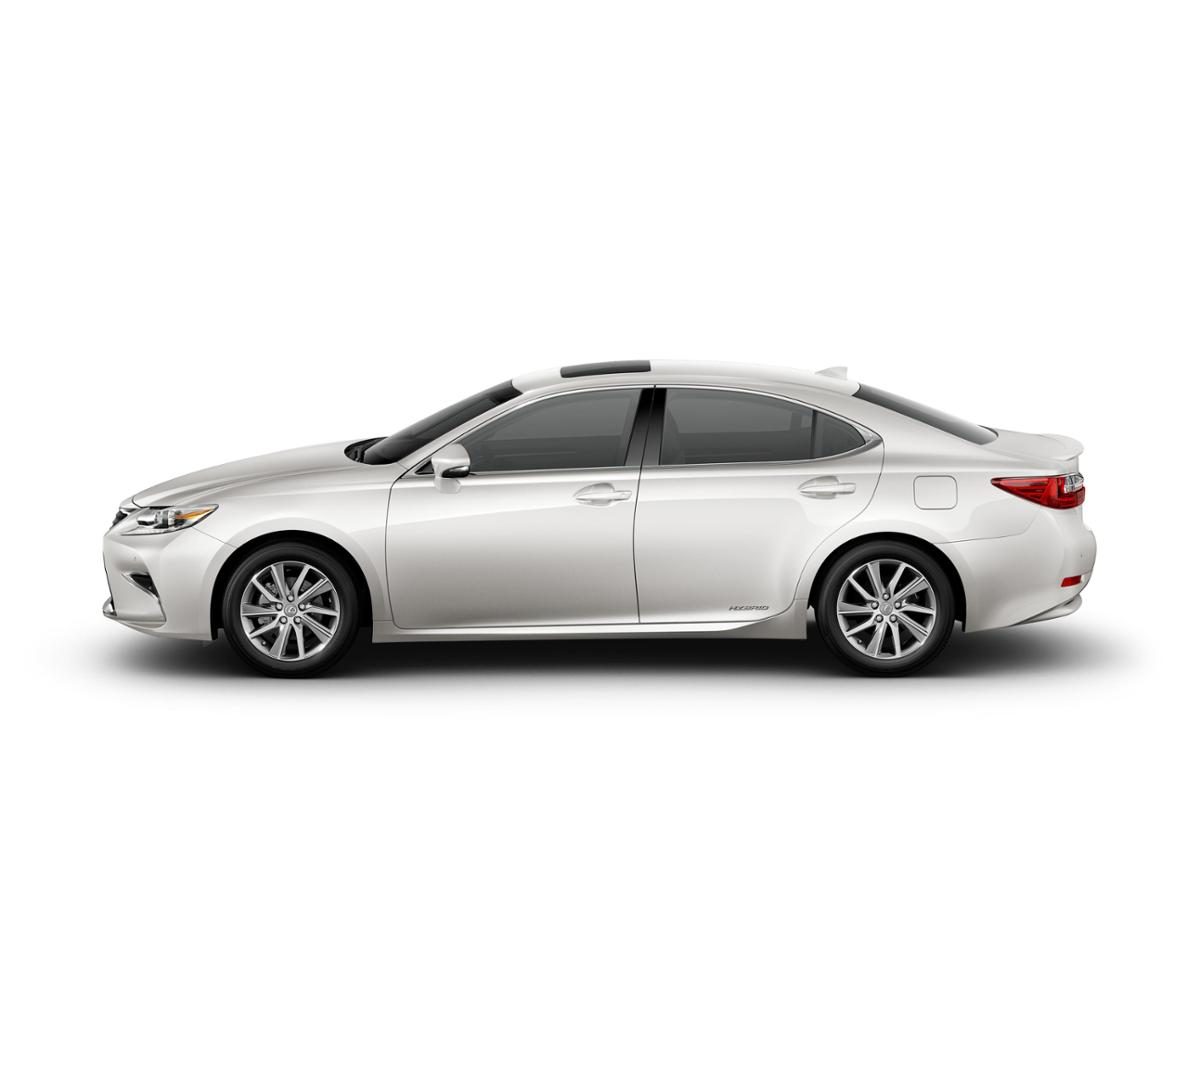 2018 Lexus ES 300h Vehicle Photo in Modesto, CA 95356